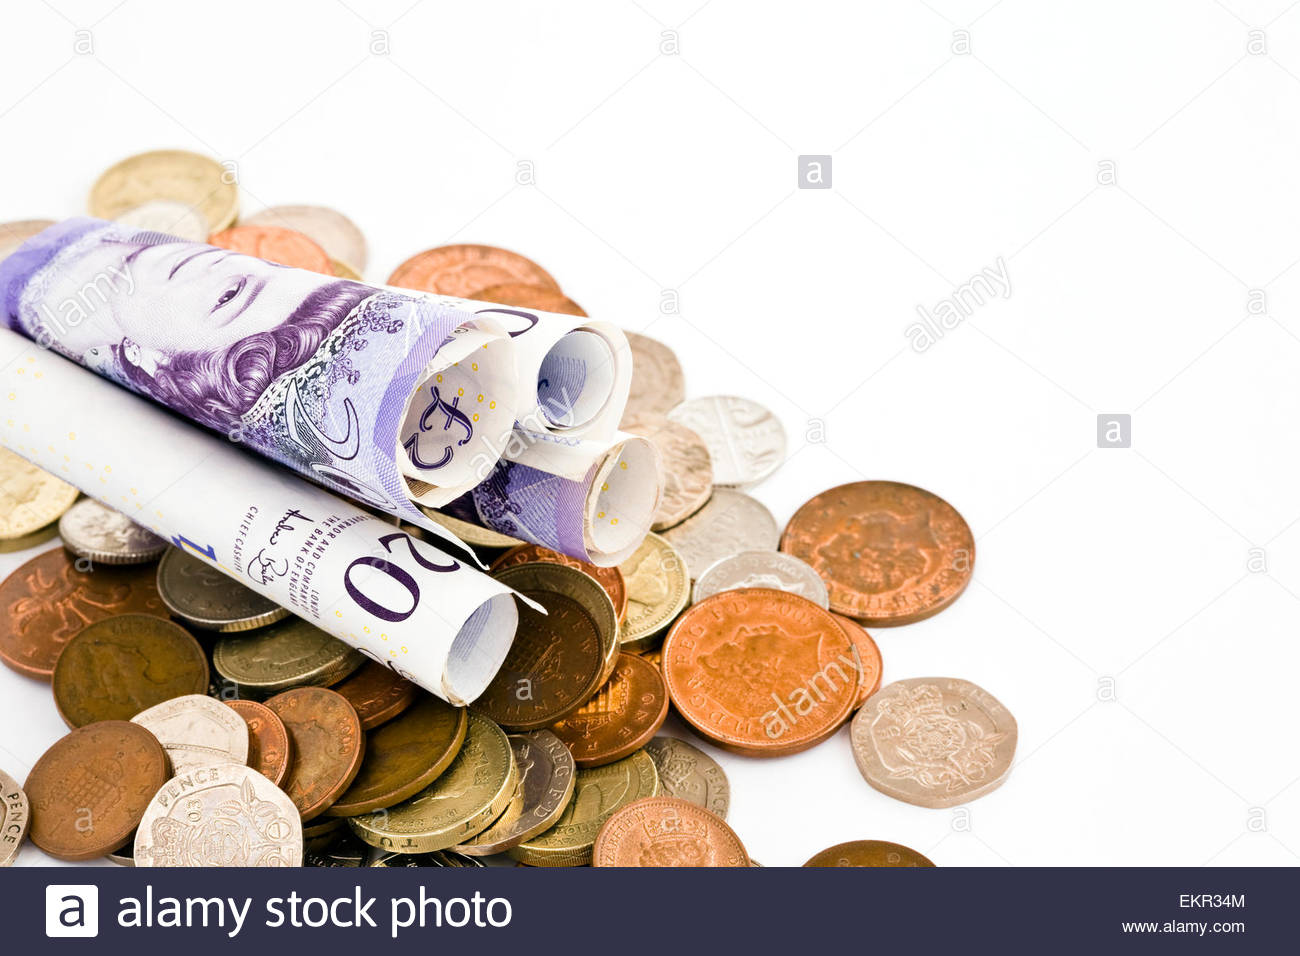 Rolled up 20 pound notes with coins on white background with copy space - Stock Image